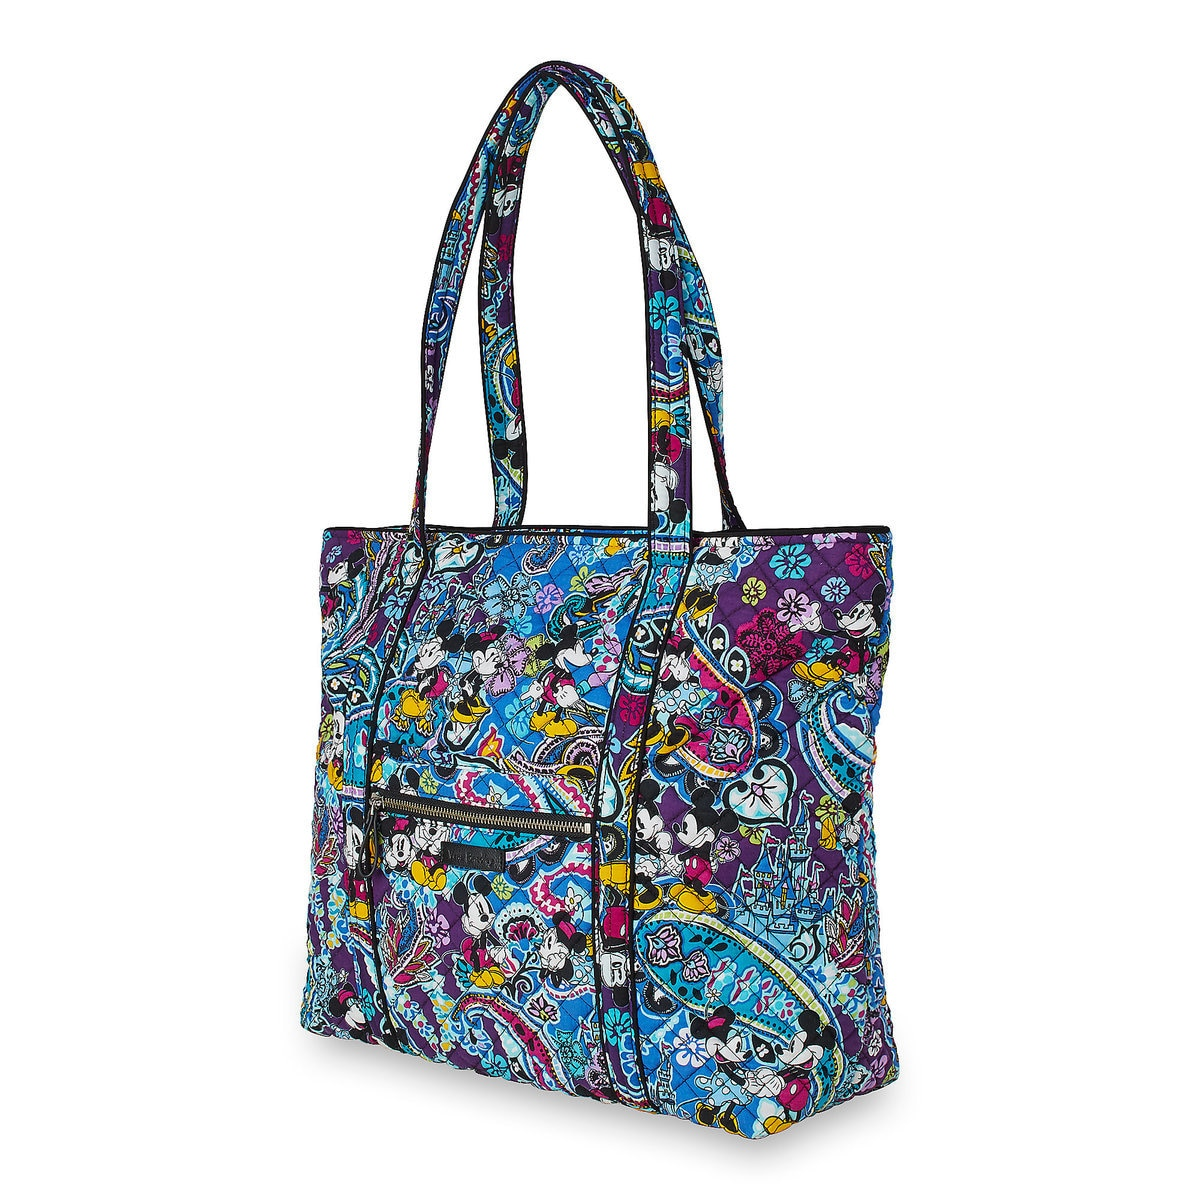 Vera Bradley Mickey and Minnie Paisley Tote